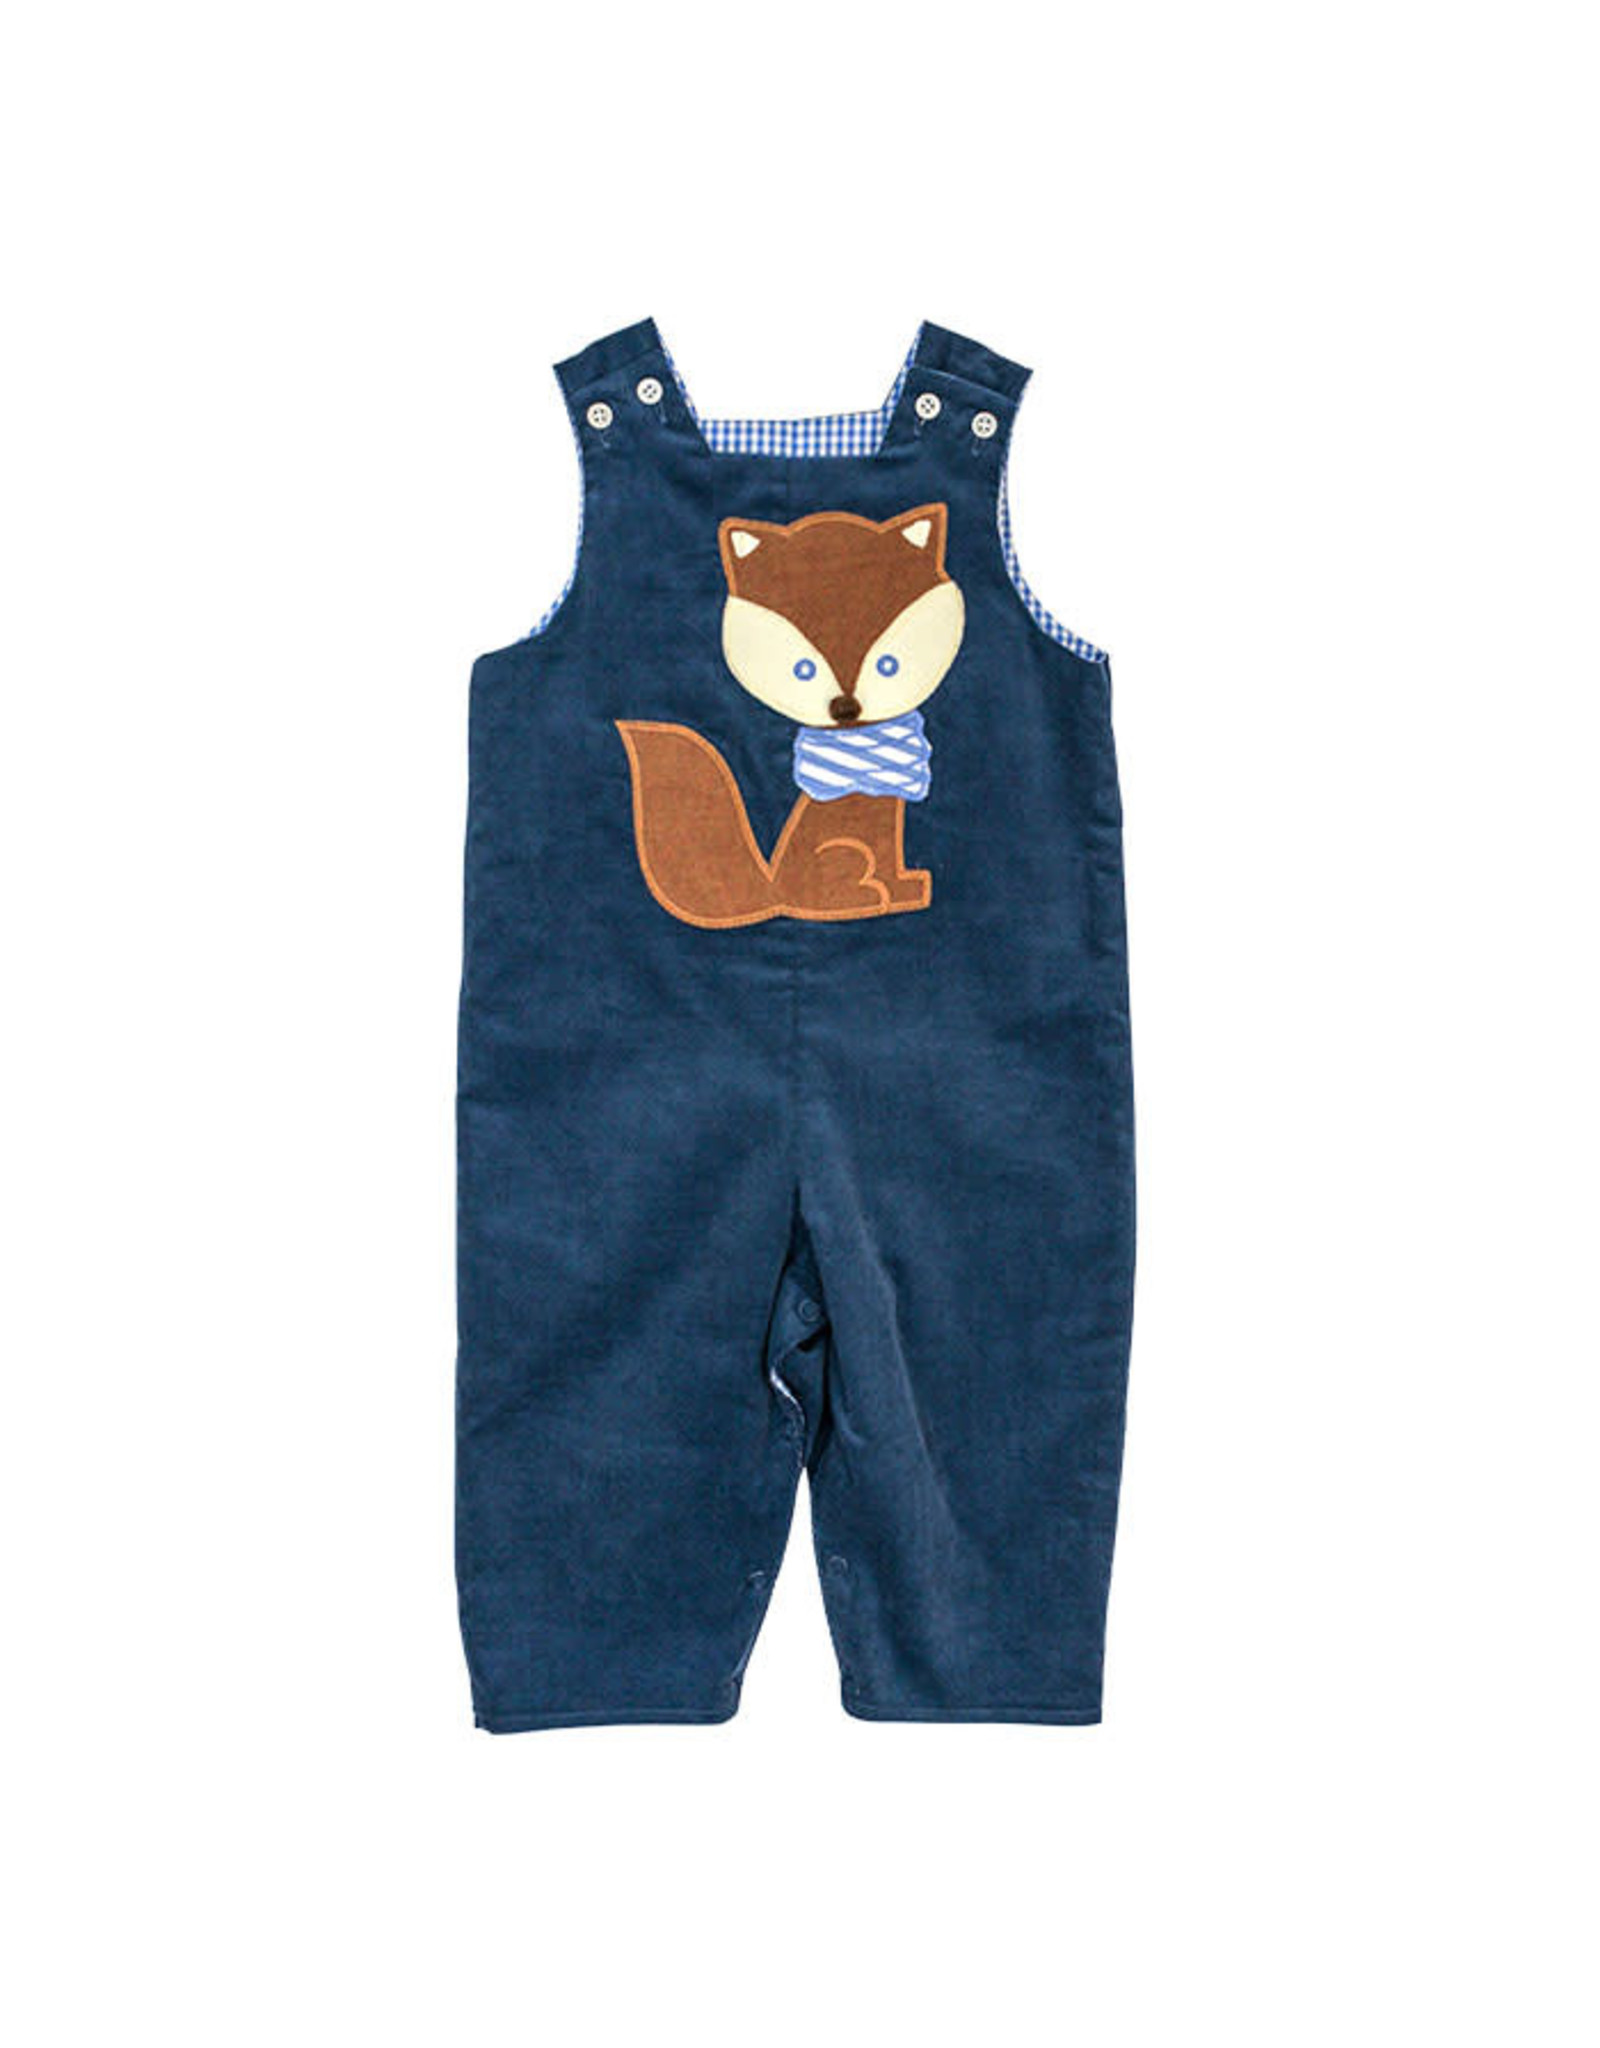 The Bailey Boys Fox Applique Reversible Jon Jon